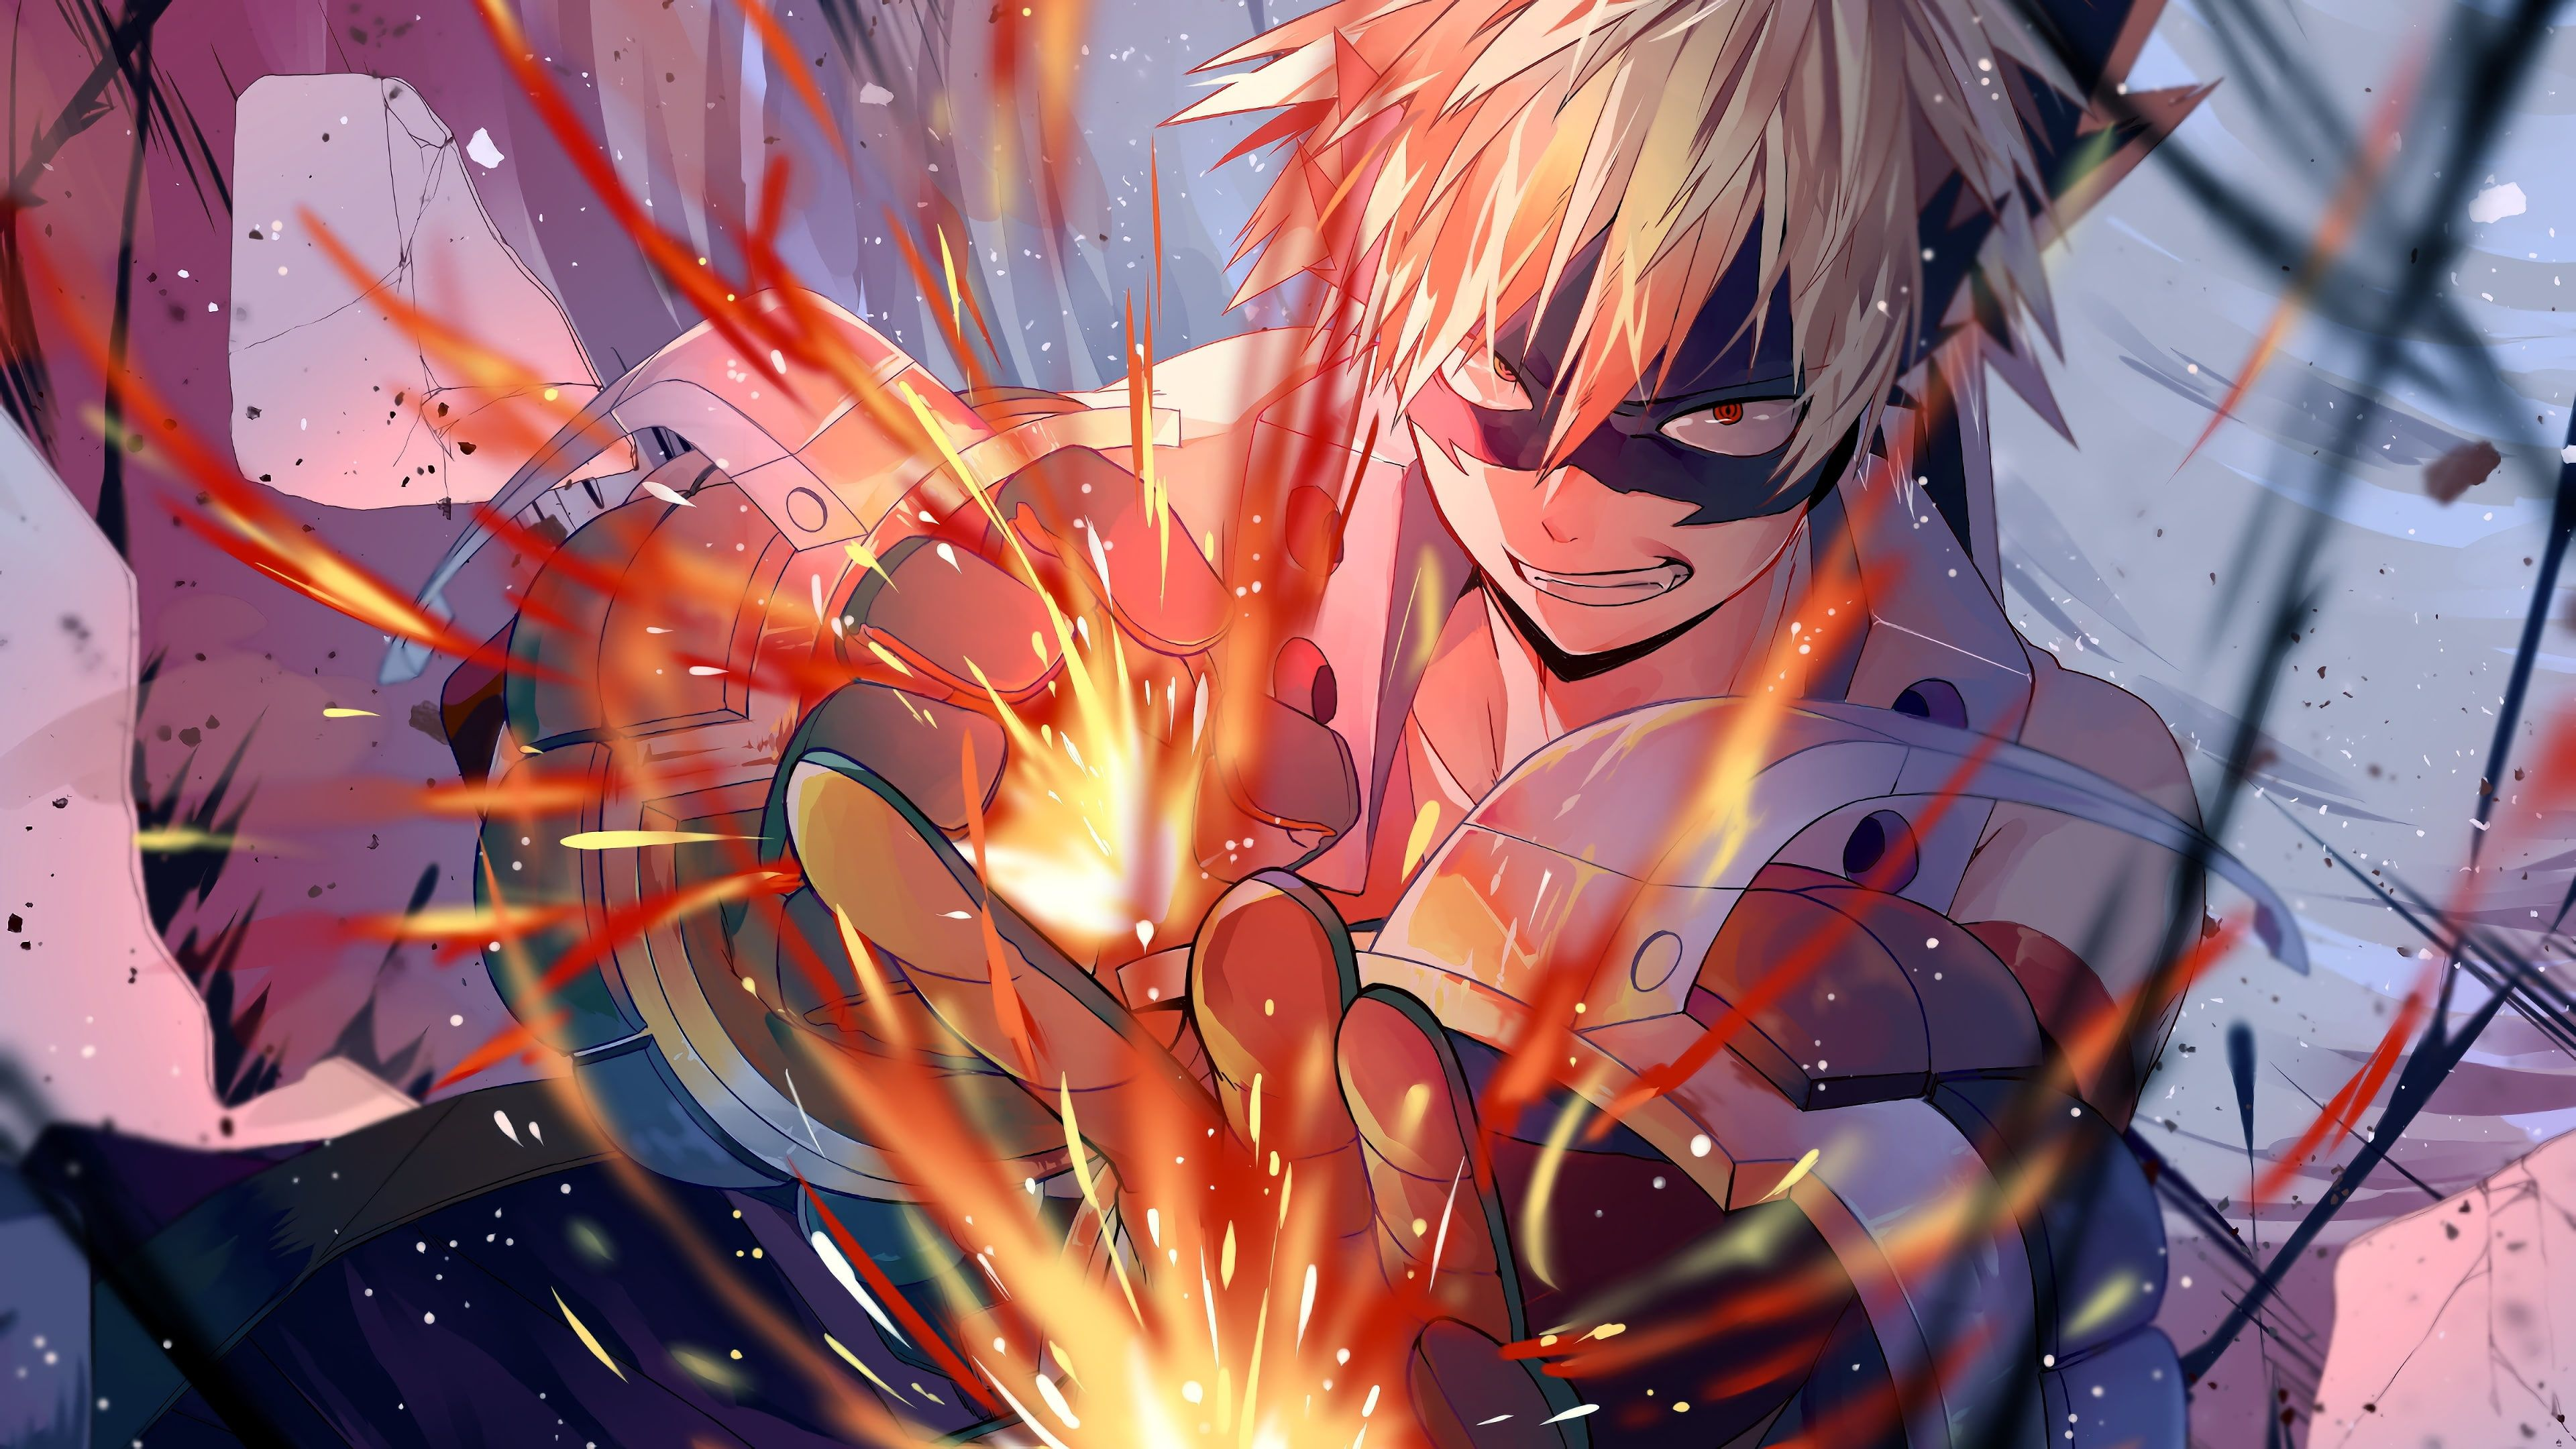 My Hero Academia Anime Artist Artwork Digital Art Hd 4k Katsuki Bakugou 4k Wallpaper Hdwallpaper De In 2020 Anime Wallpaper Hero Wallpaper Hd Anime Wallpapers